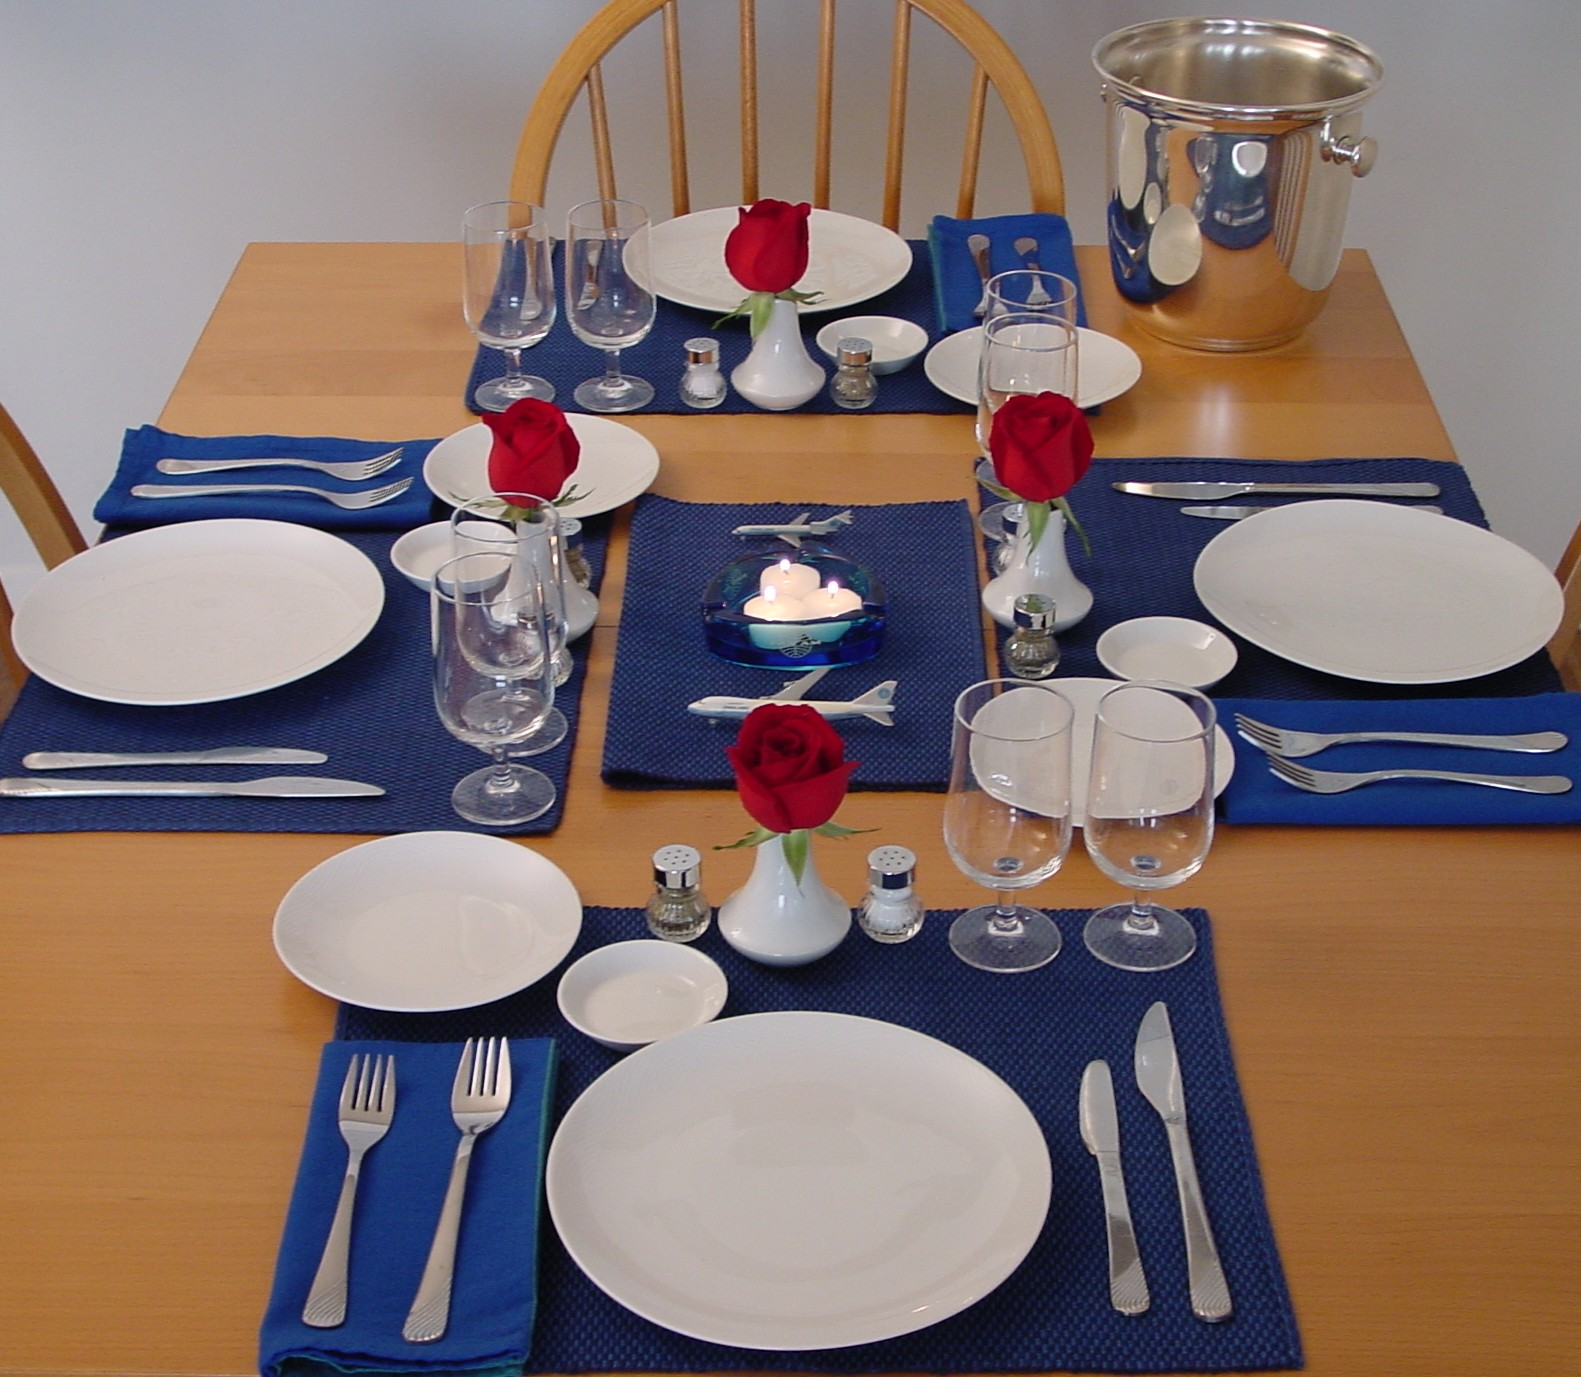 Pan Am Dinner Table: simple table setting for lunch